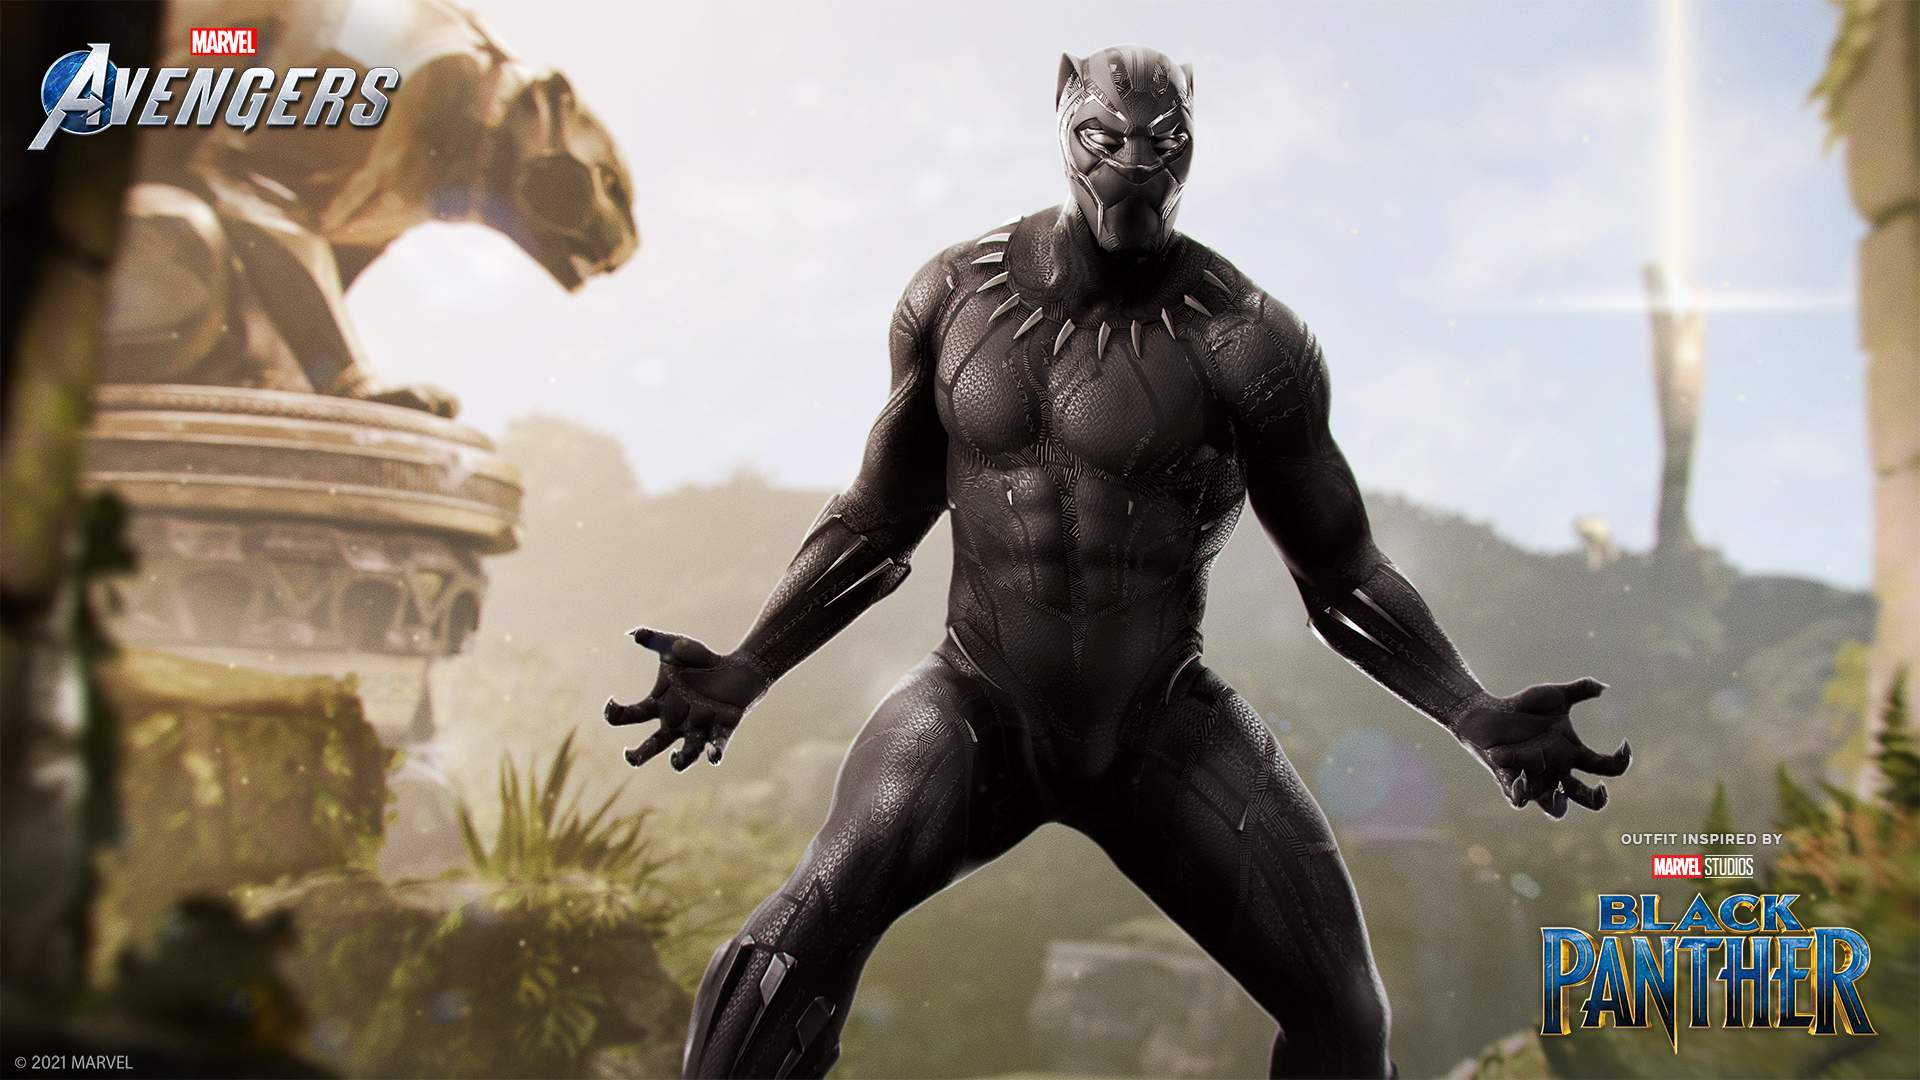 The Black Panther in his Marvel Cinematic Universe Outfit.